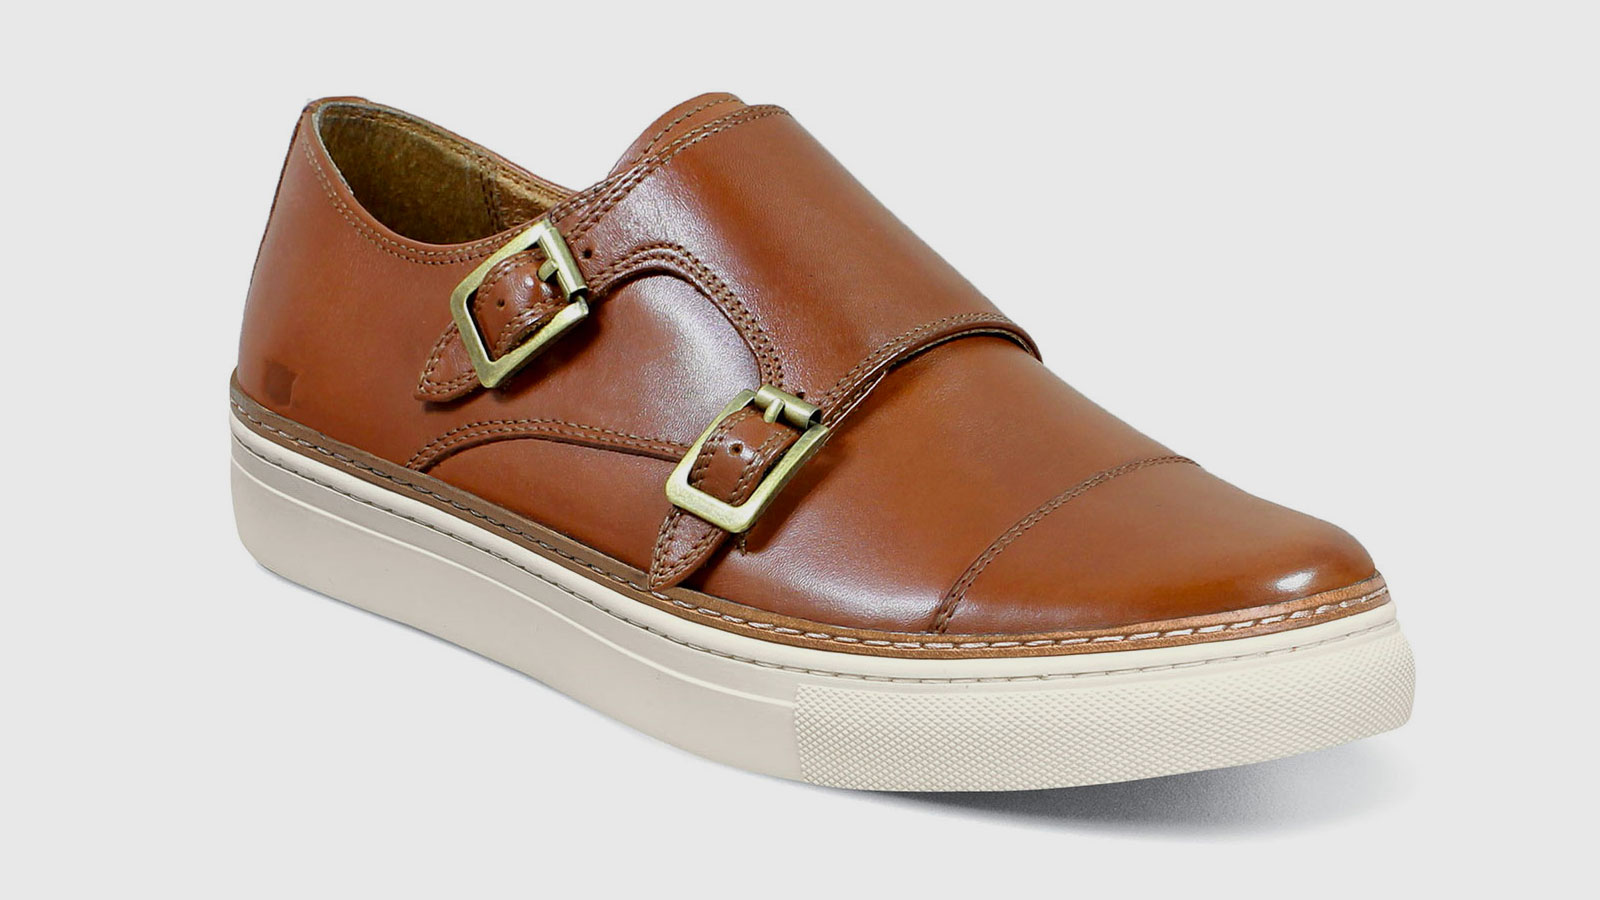 Florsheim Press Cap Toe Double Monk Sneakers